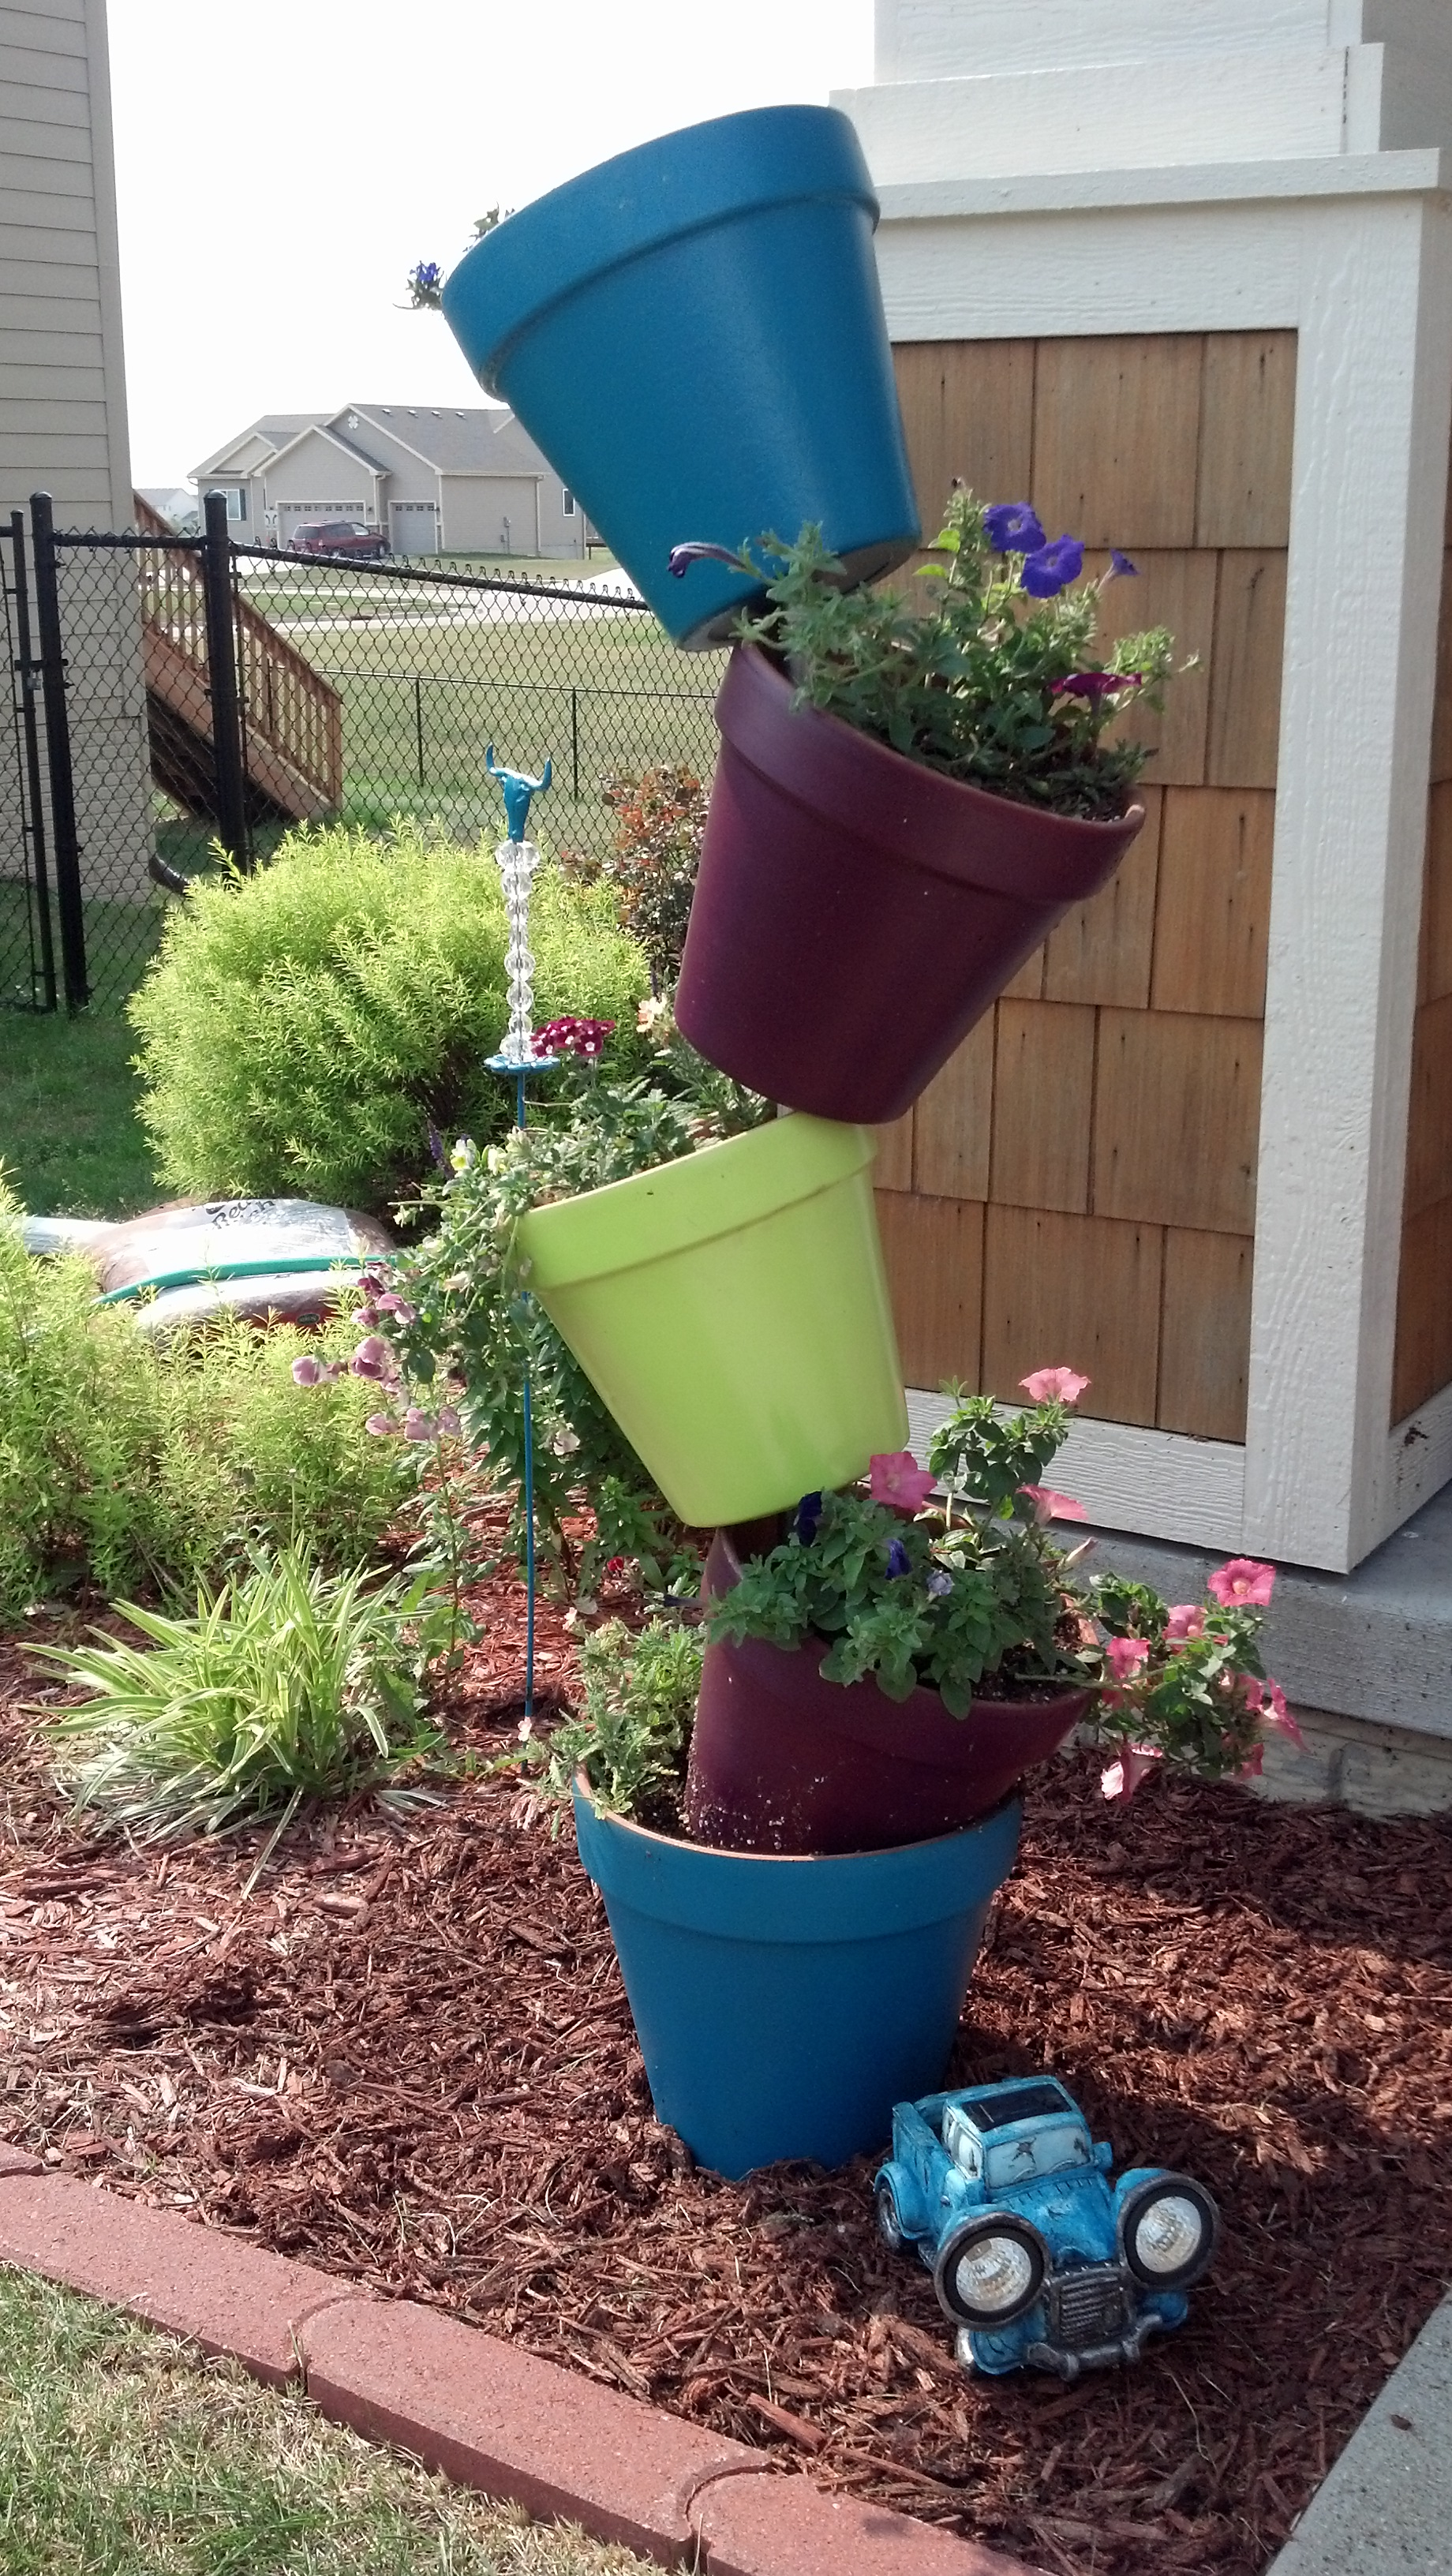 Her Pinspiration Leaning Tower of Flowers – Her View From Home